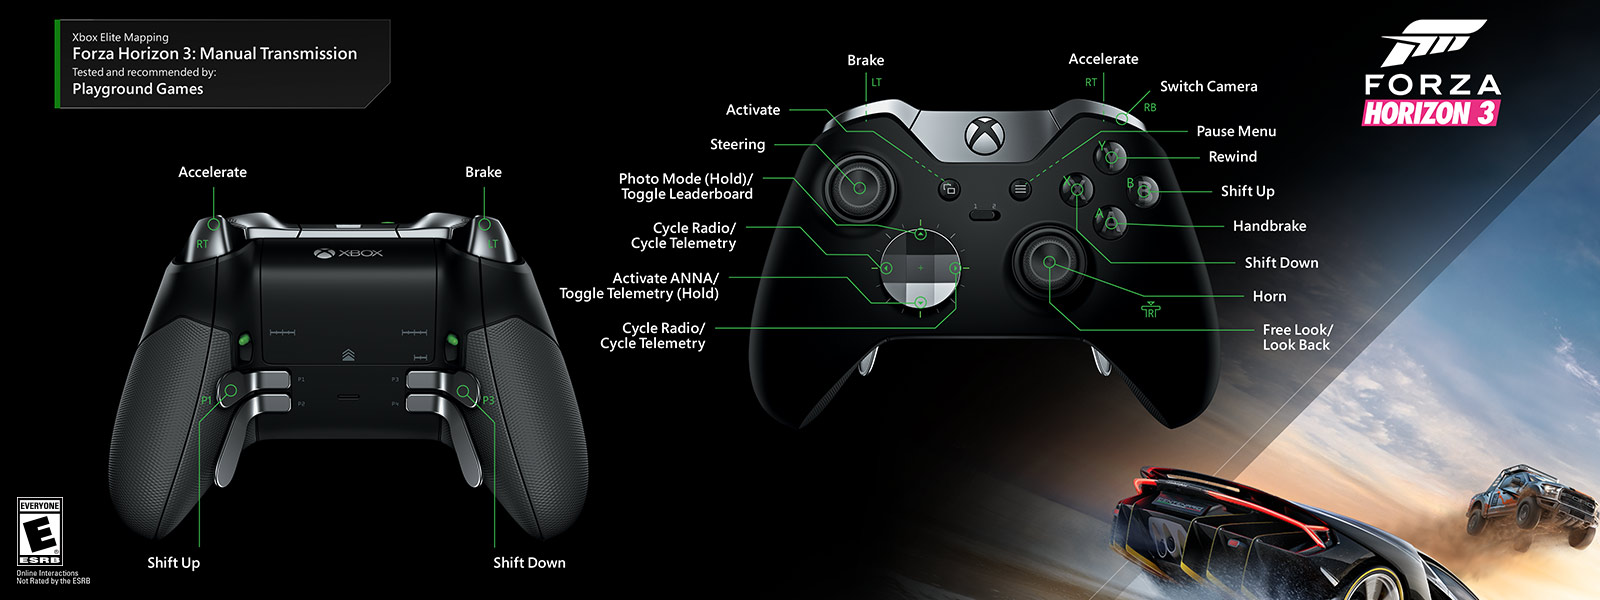 Xbox Elite Wireless Controller One 360 Usb Wiring Diagram Forza Horizon 3 Manual Transmission Mapping